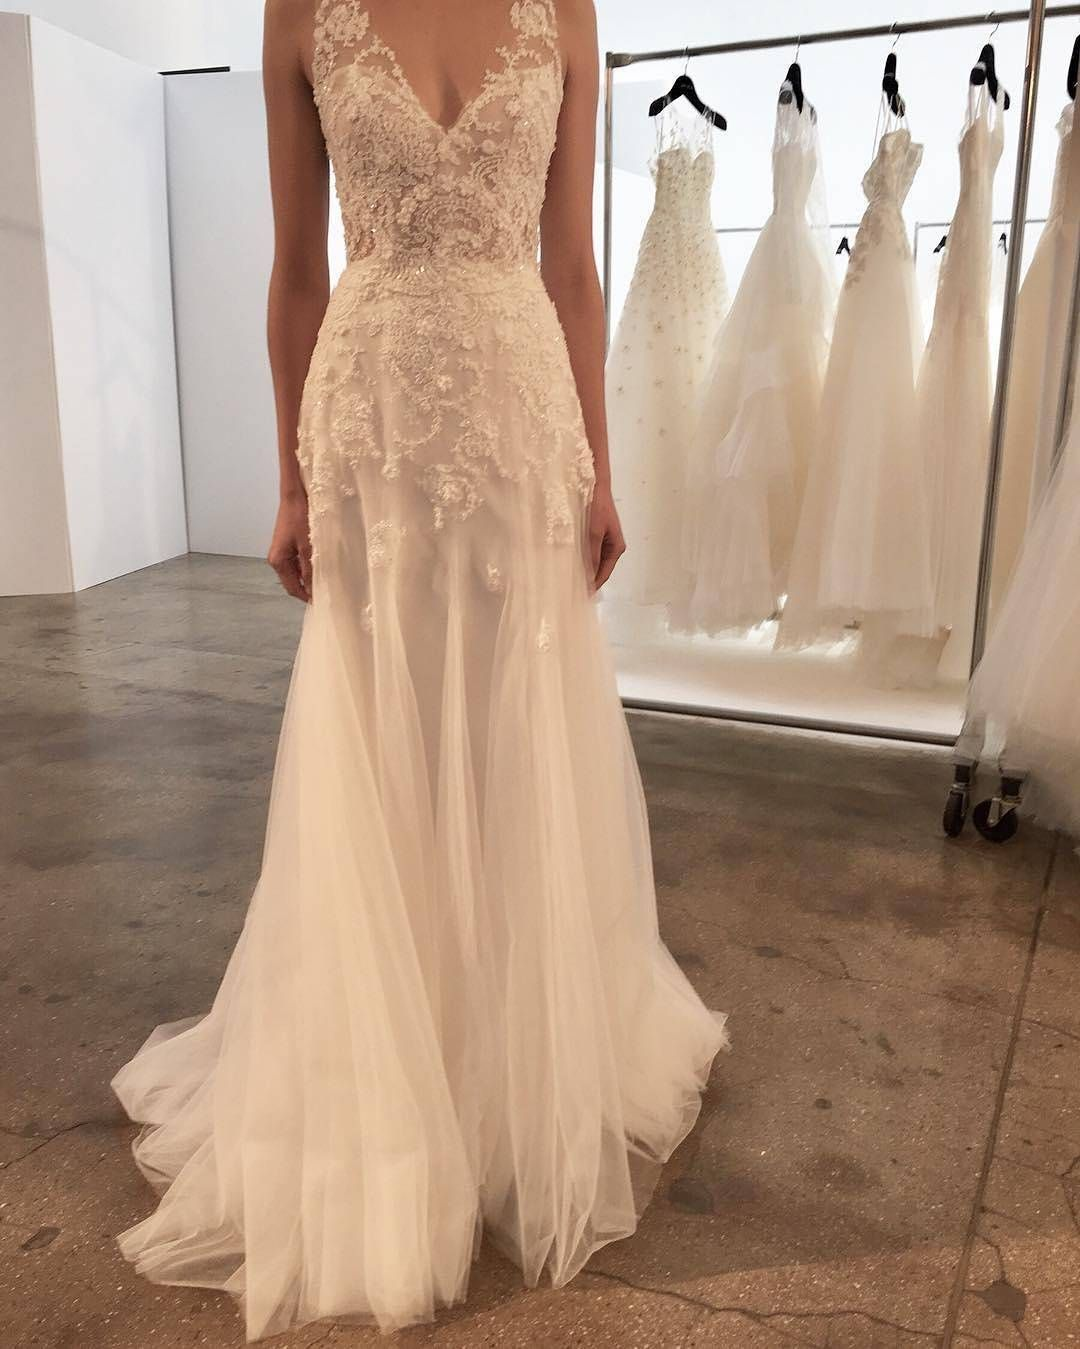 613 likes 15 comments christos christosbridal on instagram handmade beach wedding dresses 2017 long custom wedding gowns bridal dress from superbweddingdress ombrellifo Gallery